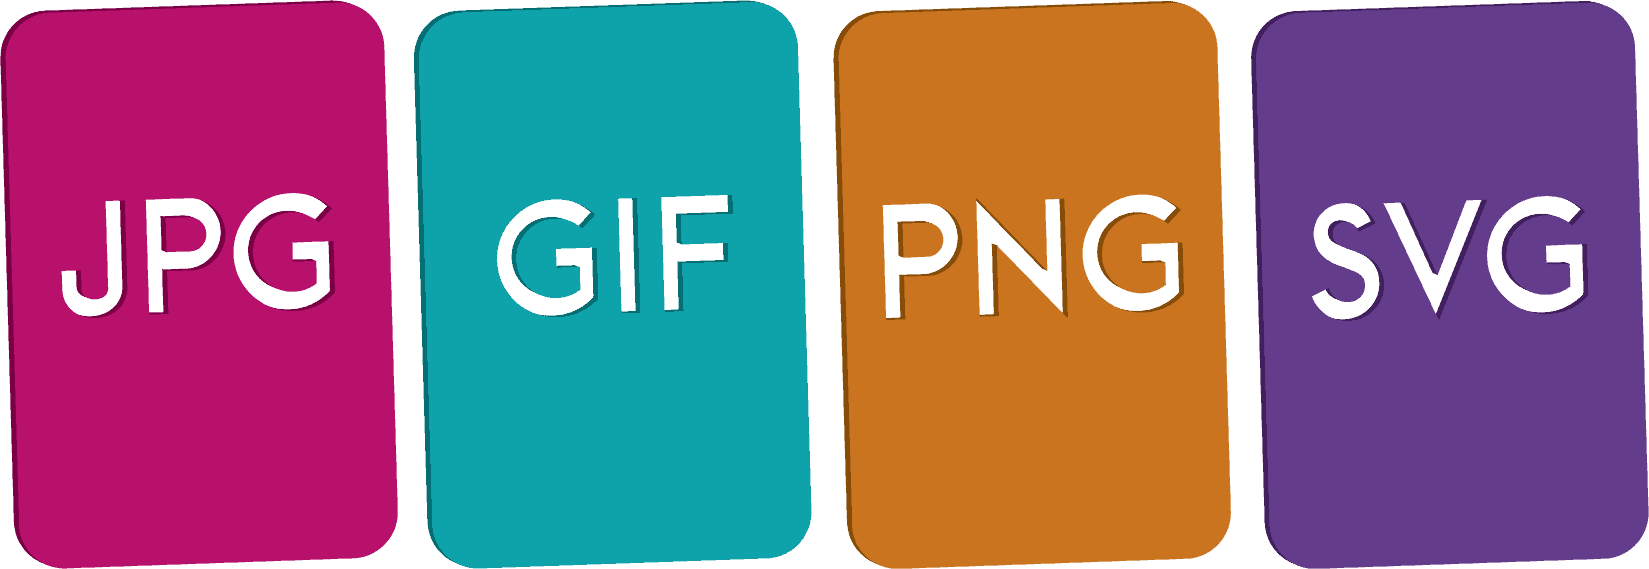 Compress jpg & png images. What the difference between